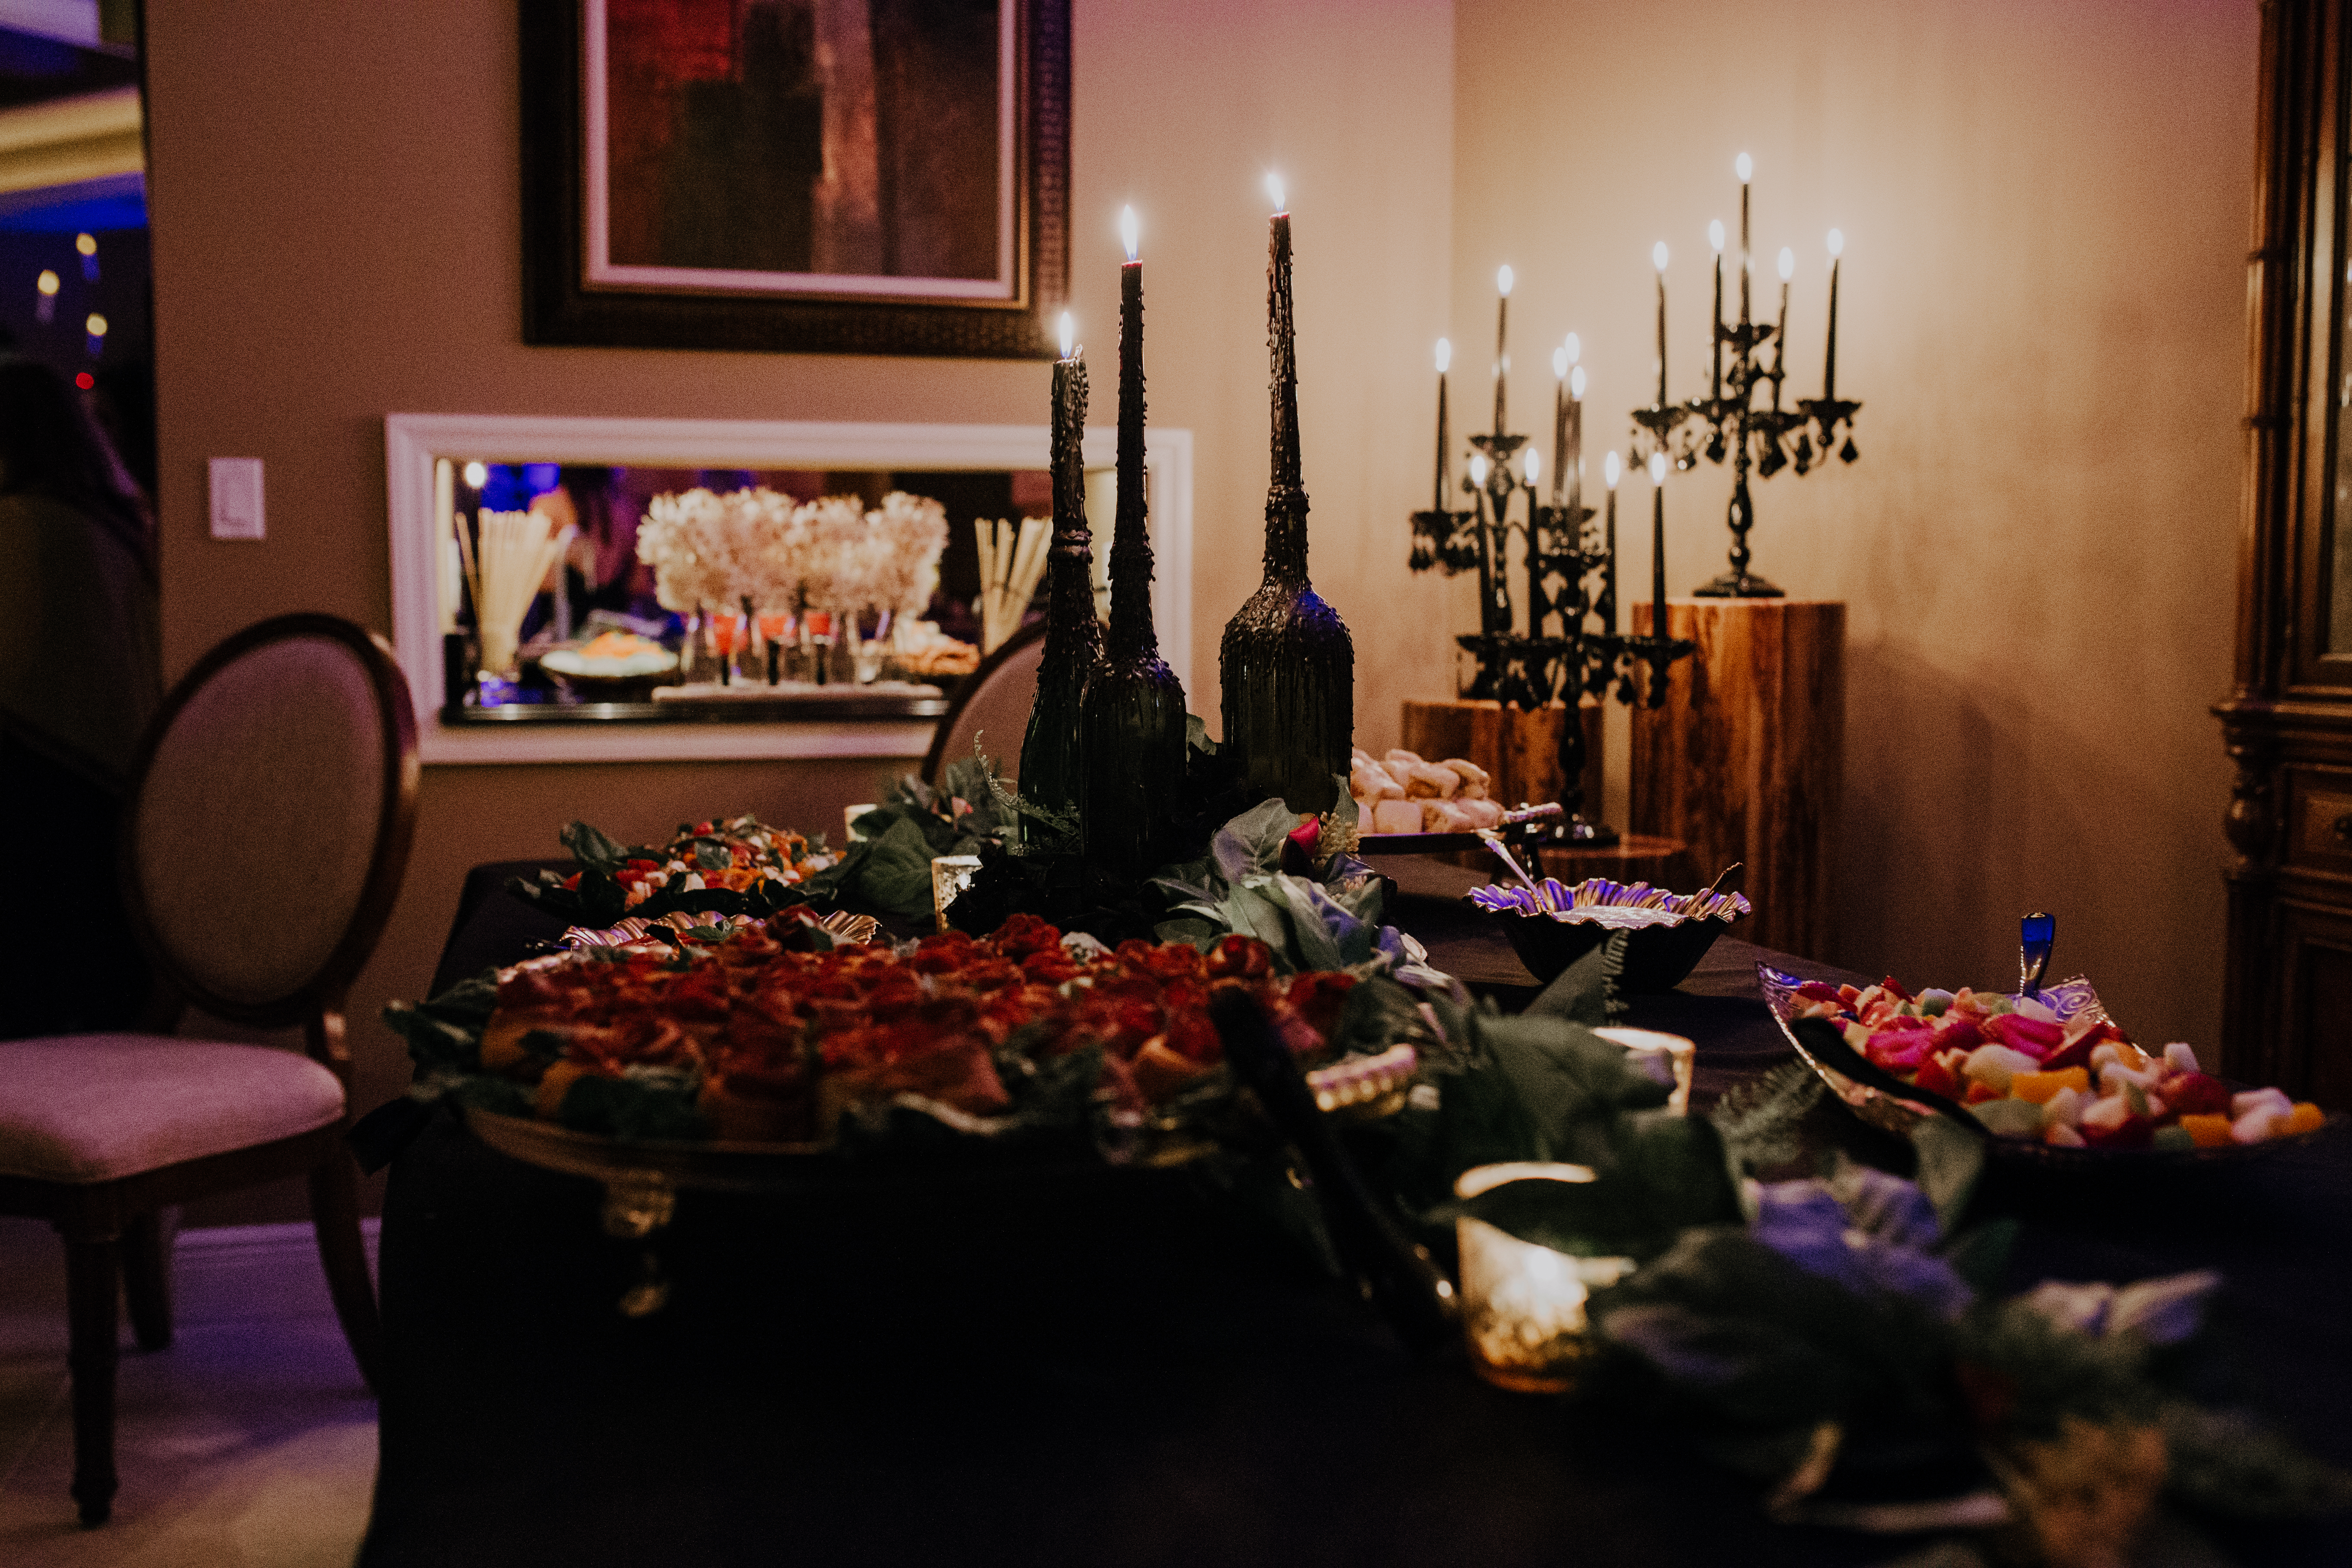 A gothic display of food and candles create a moody fall bridal shower